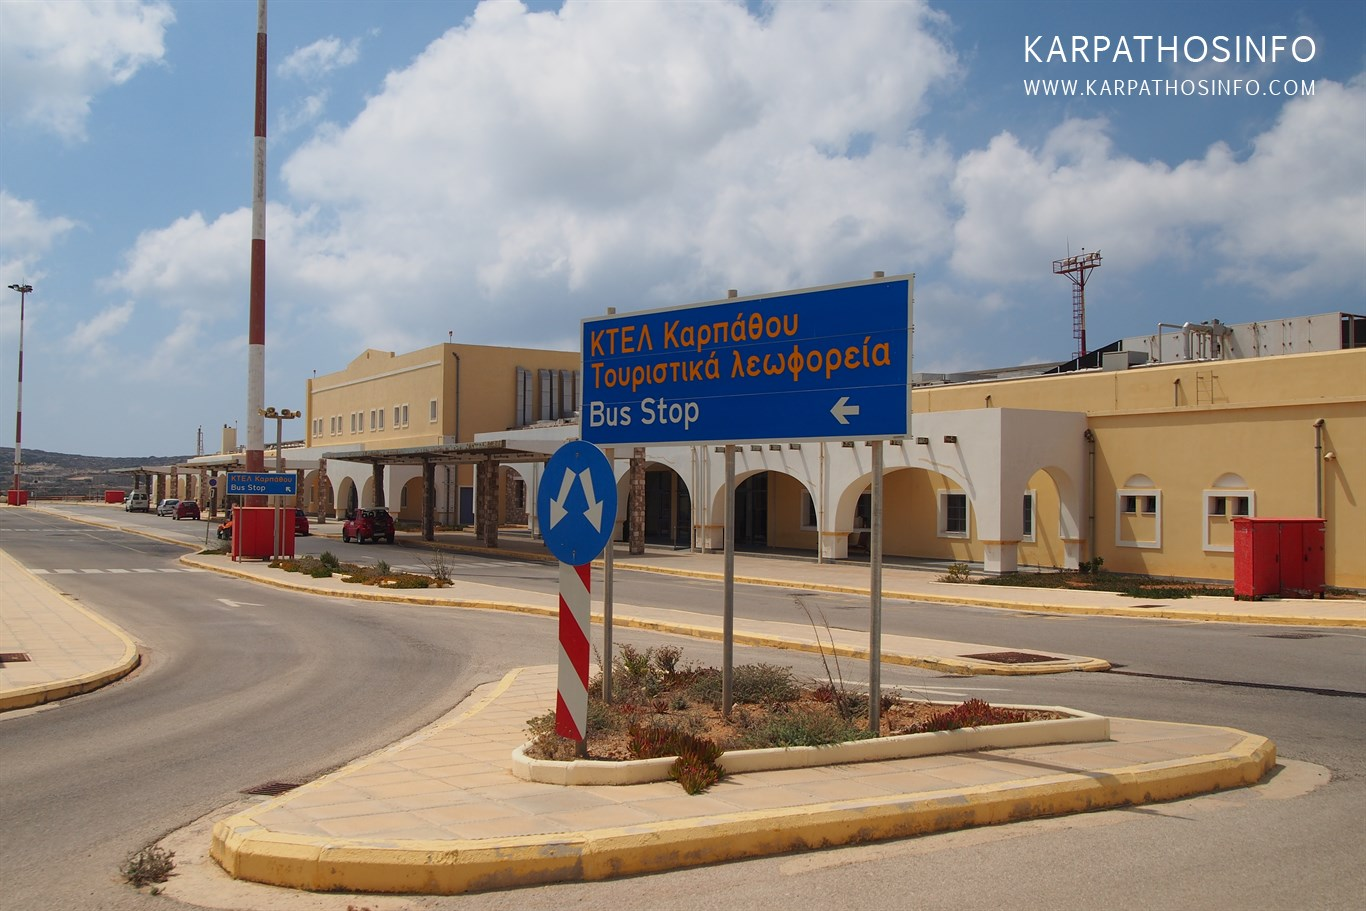 Karpathos International Airport (AOK)